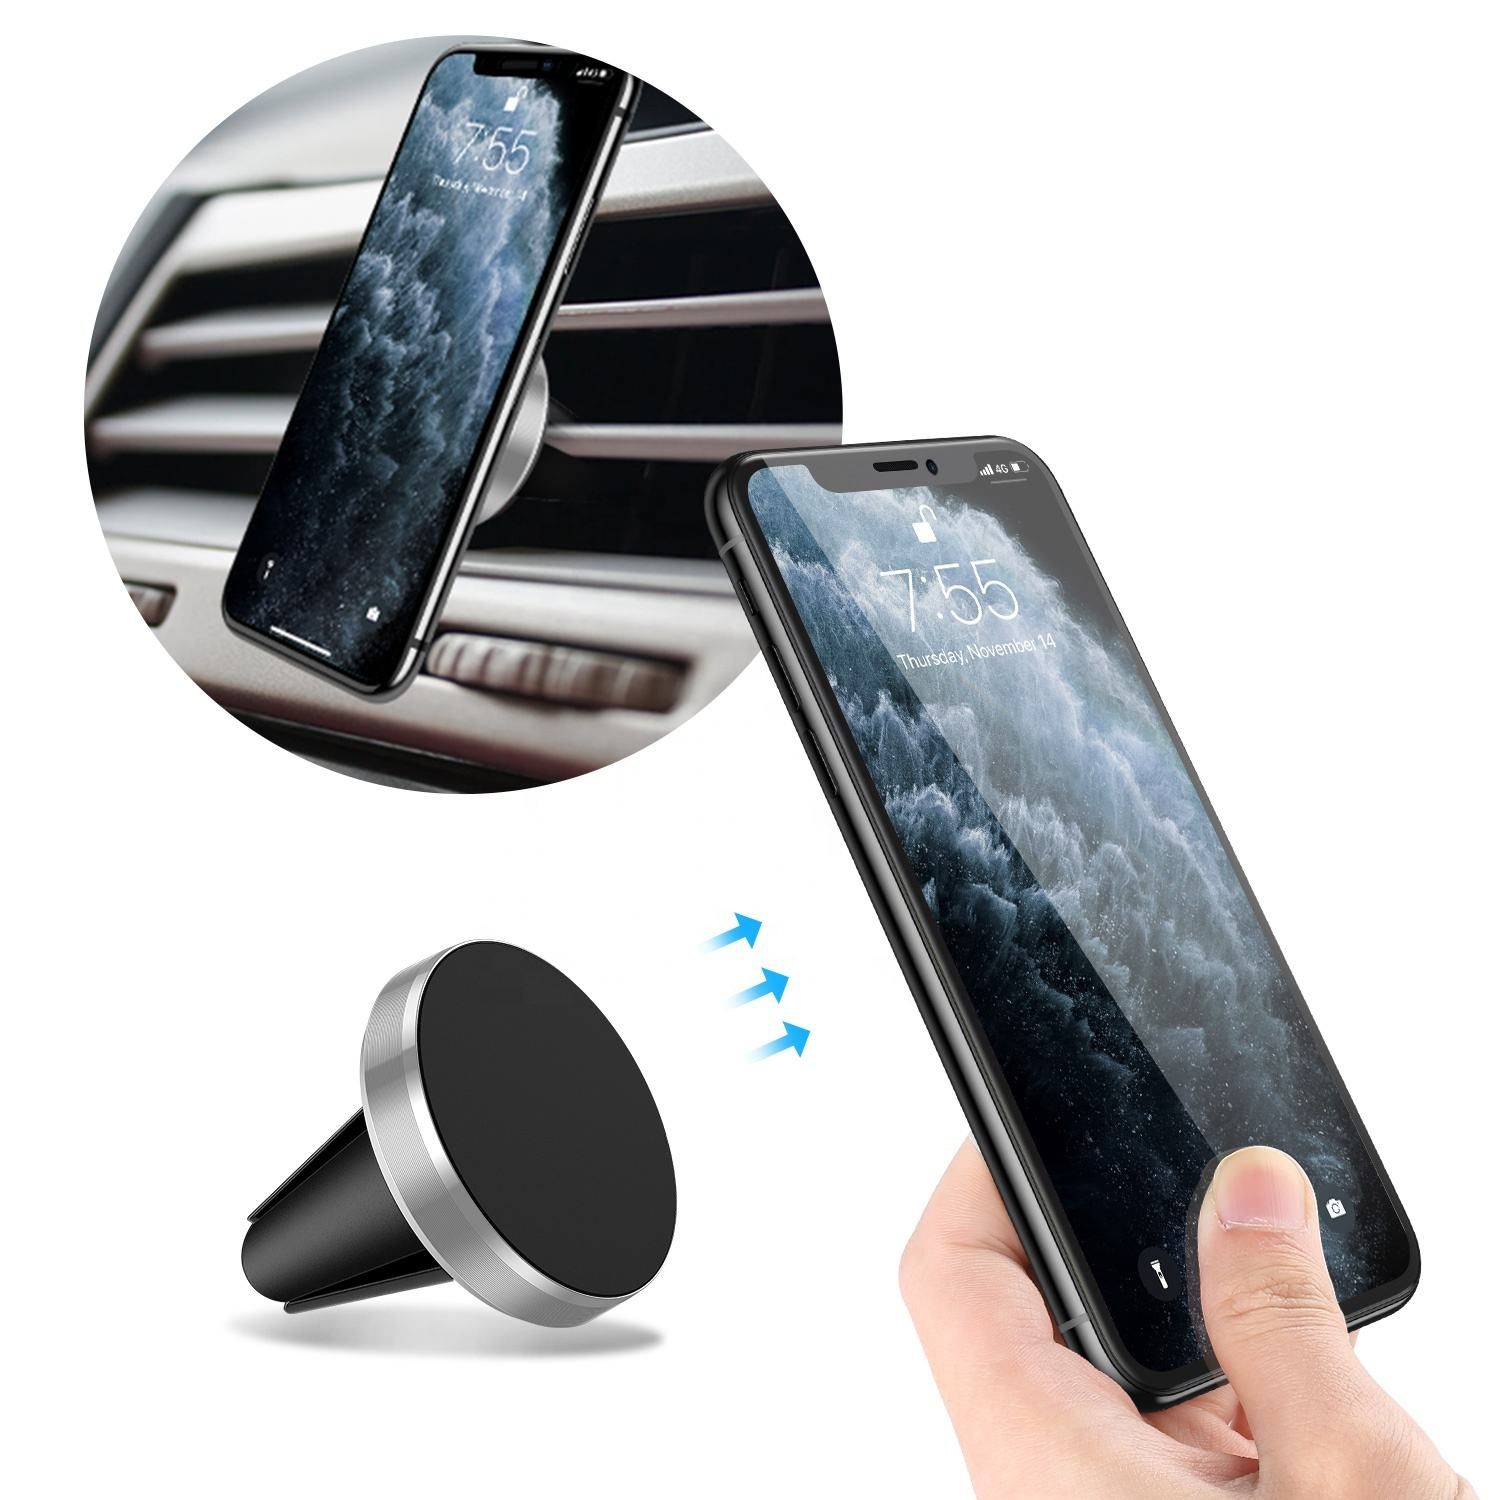 Cell Accessories Magnet Phone Magnetic Car Mount Car Phone Holder Portable Mobile Phone Stander Universal For Smartphone